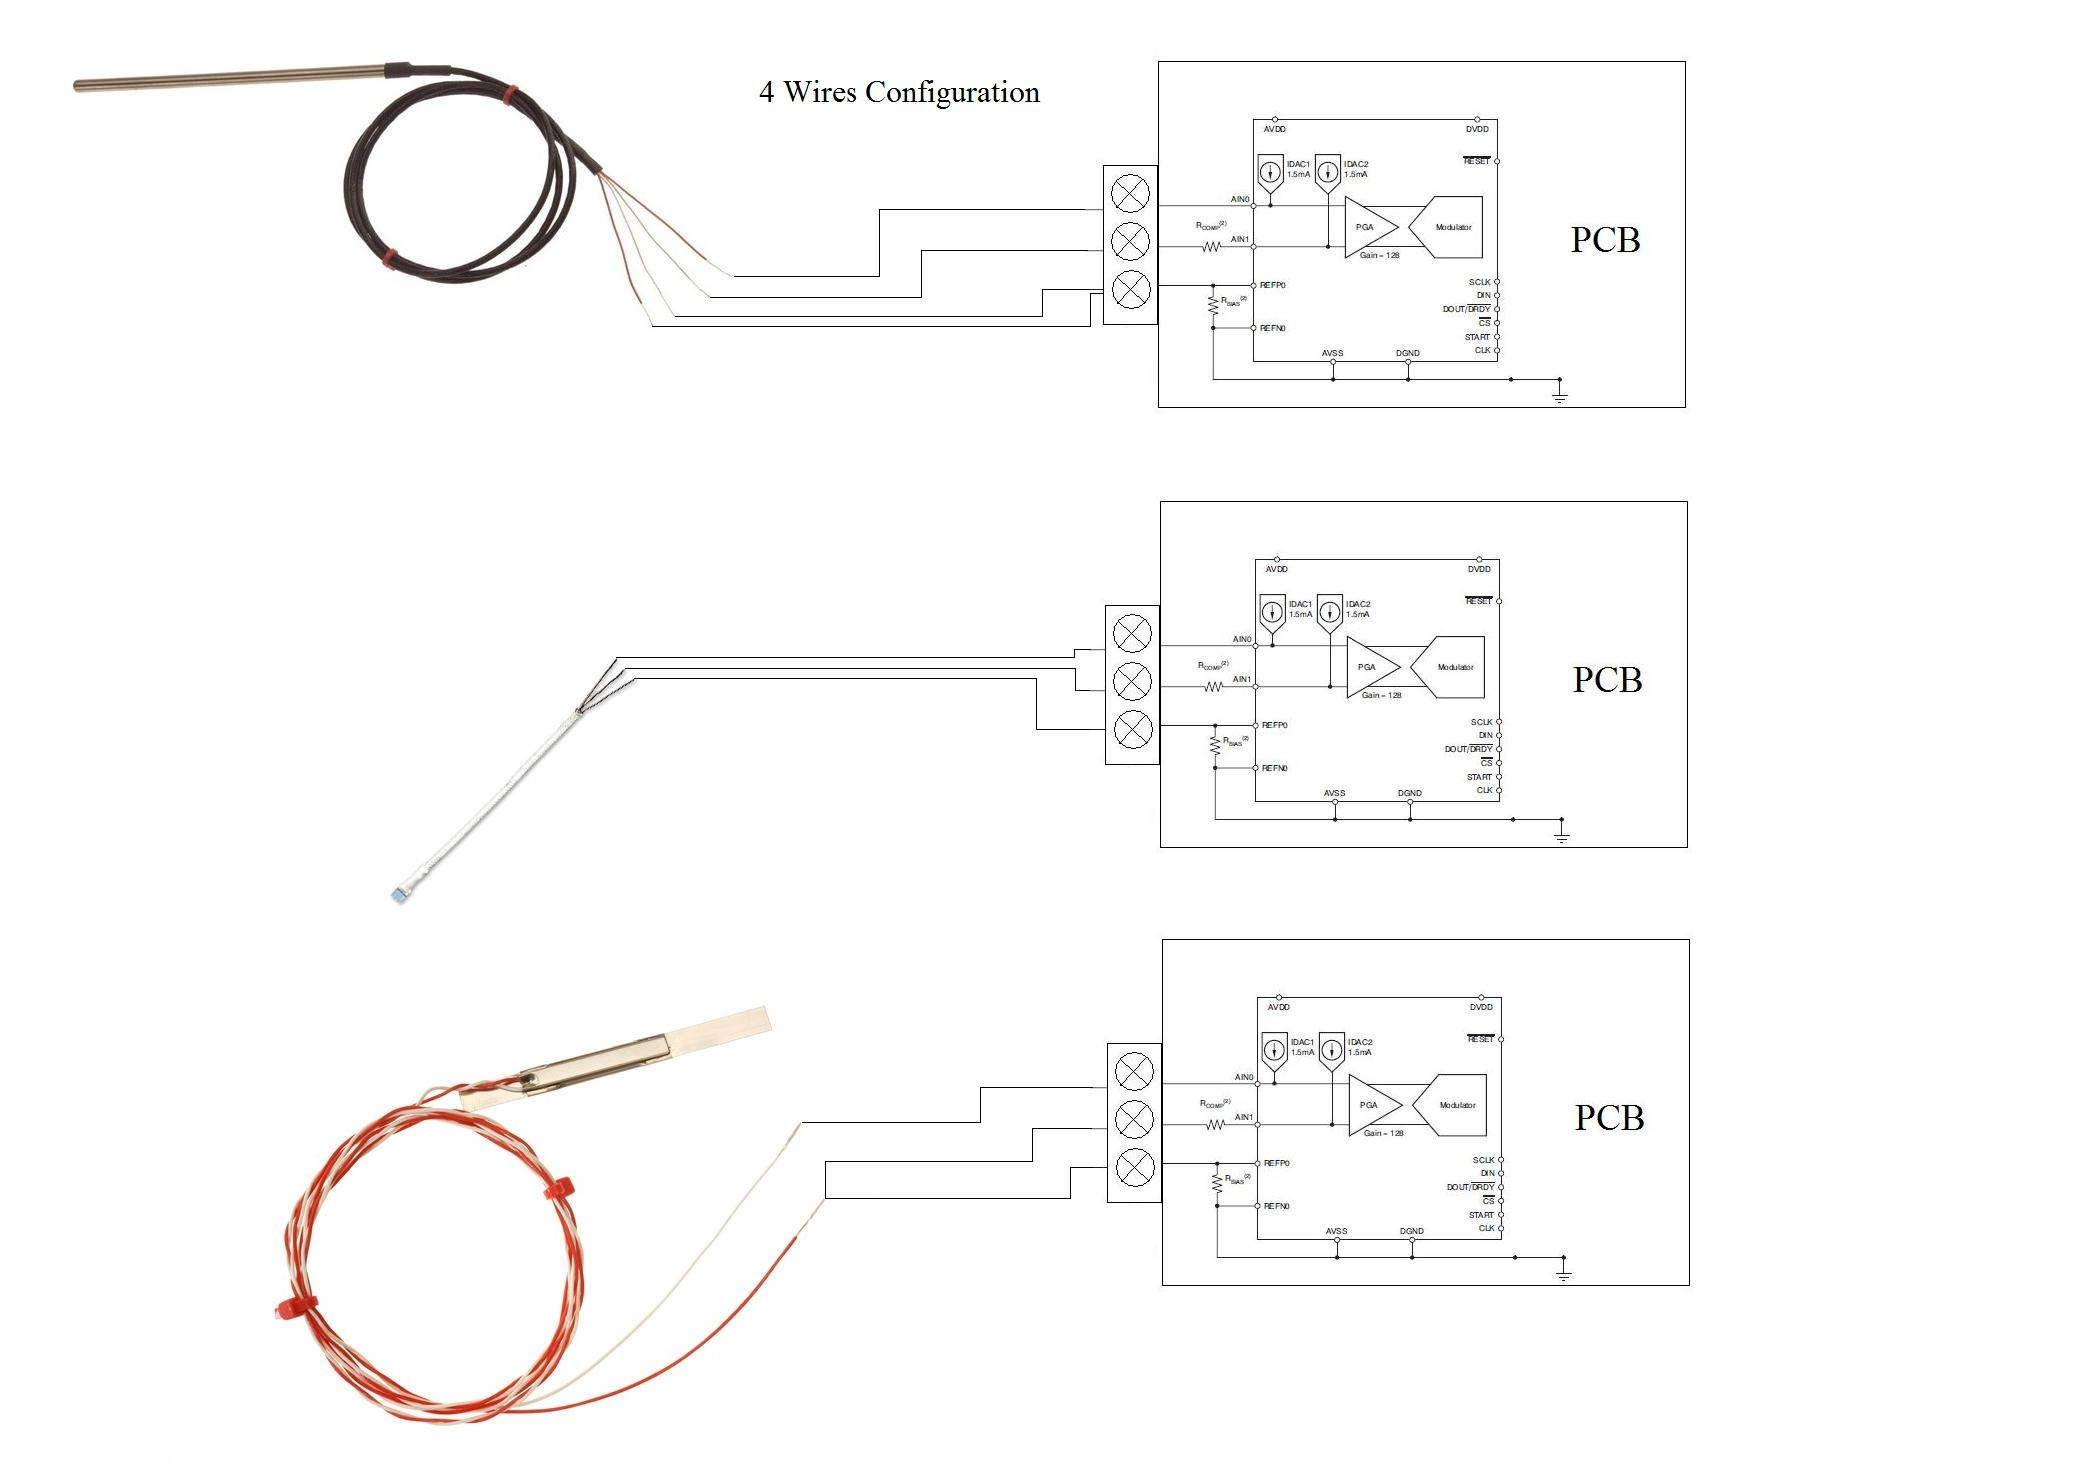 3 wire rtd wiring diagram Collection-3 Wire Rtd Wiring Diagram Unique Ads1148 Whit and Wires Precision Data Converters forum You Can 16-i